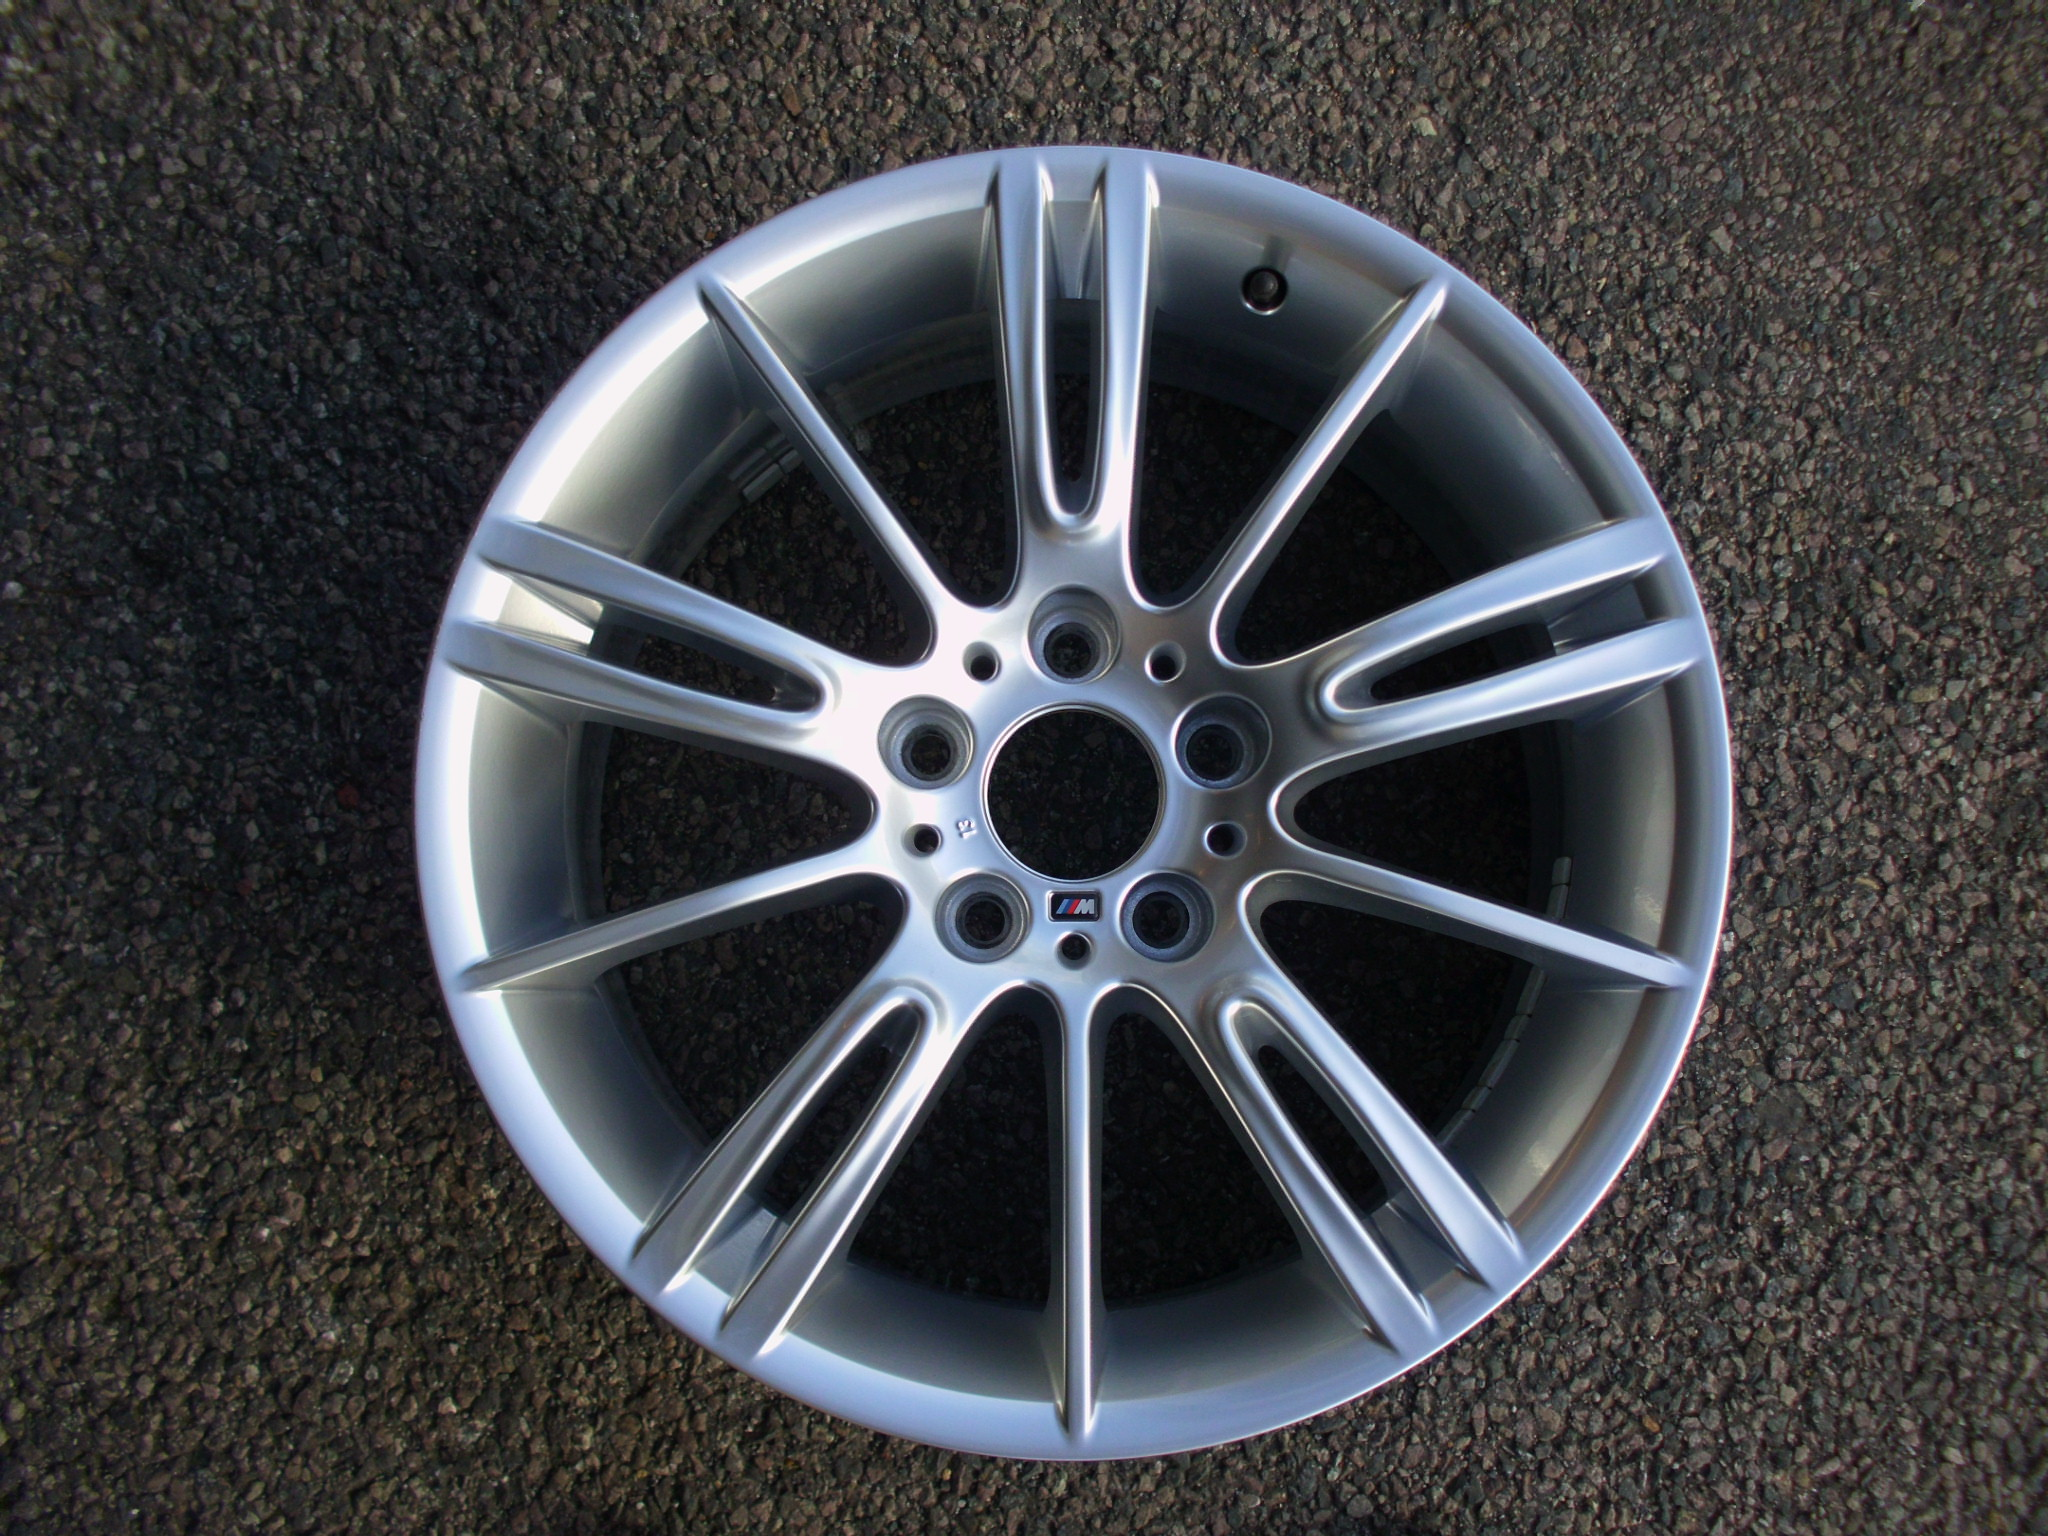 "USED SINGLE 18"" GENUINE BMW E90 3 SERIES STYLE 193M REAR ALLOY WHEEL, EXCELLENT ORIGINAL CONDITION"